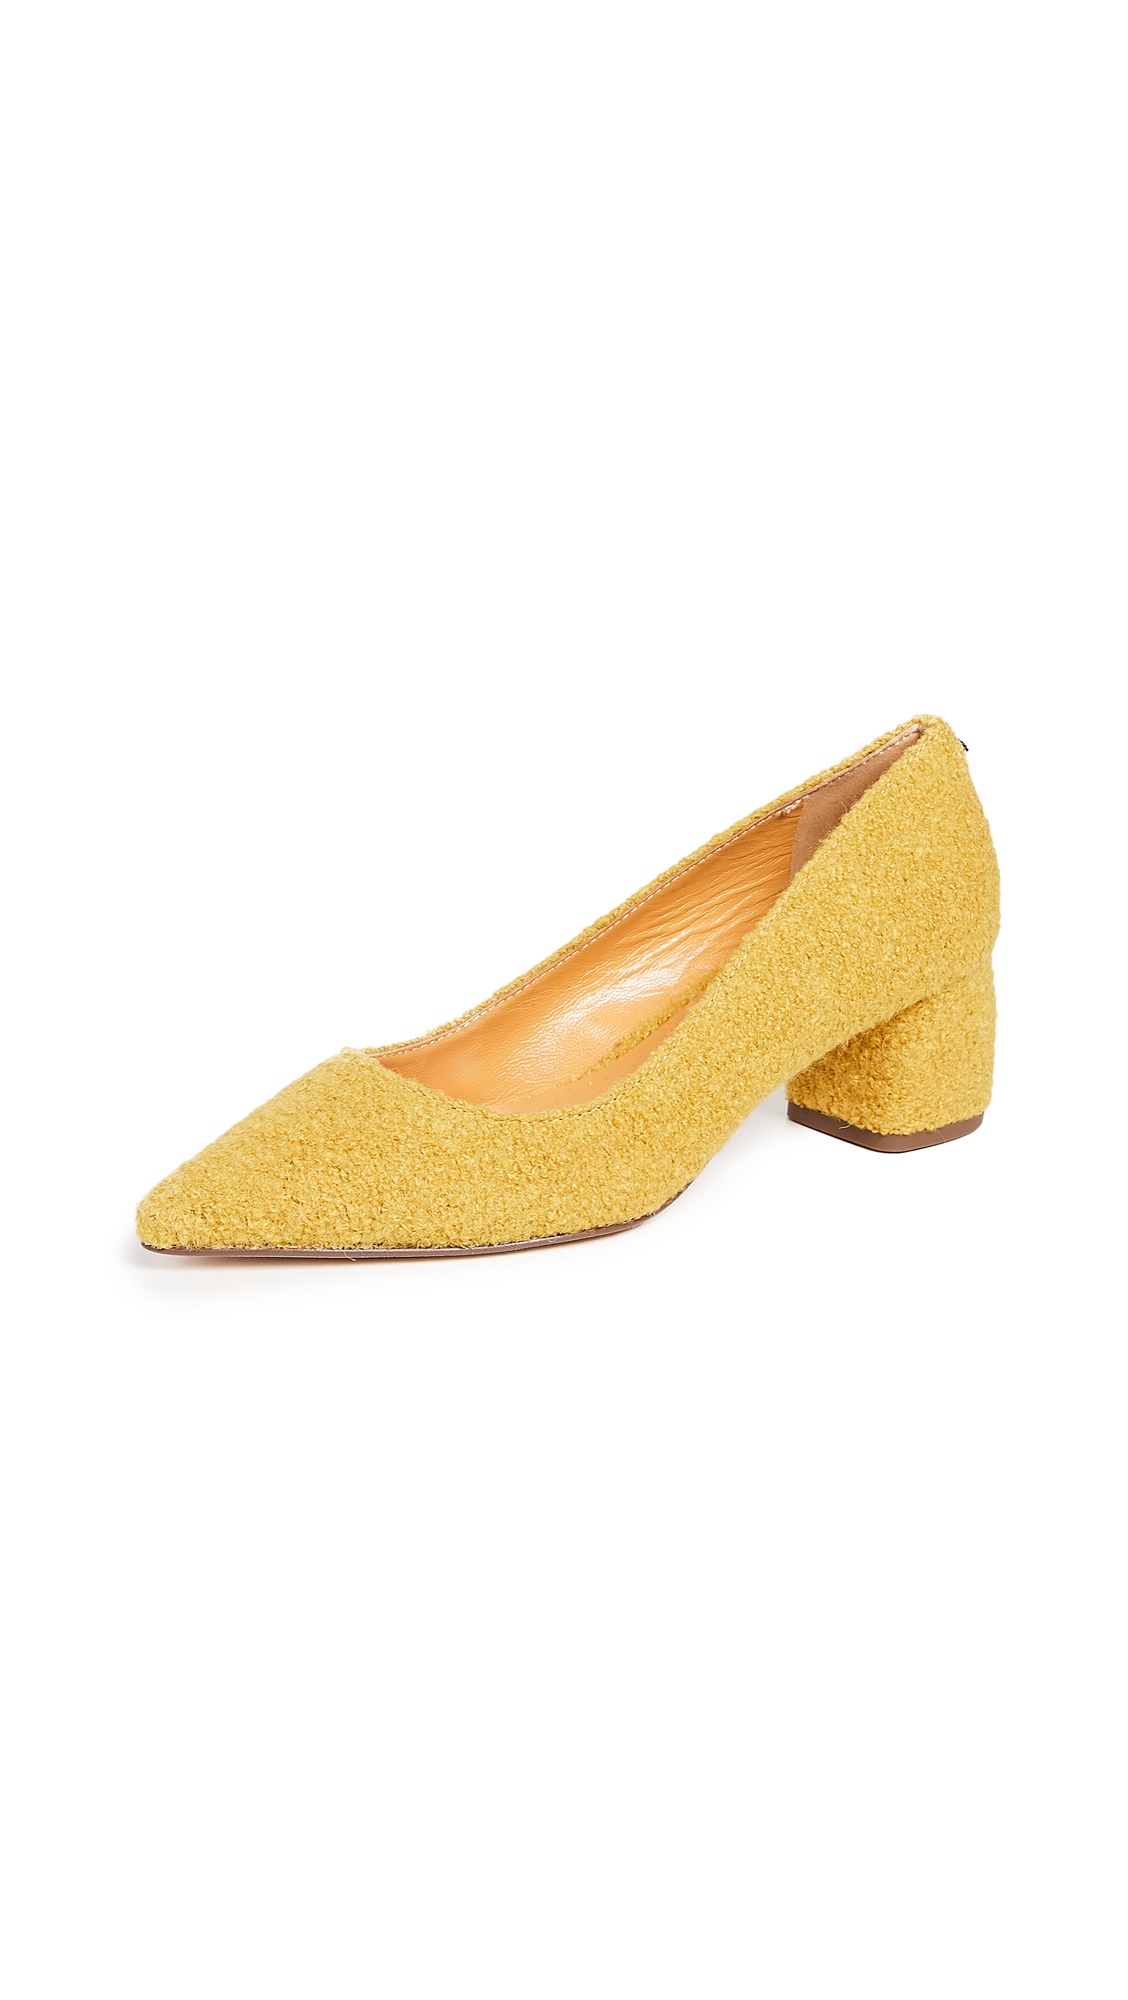 Kate Spade New York Madlyne Pumps